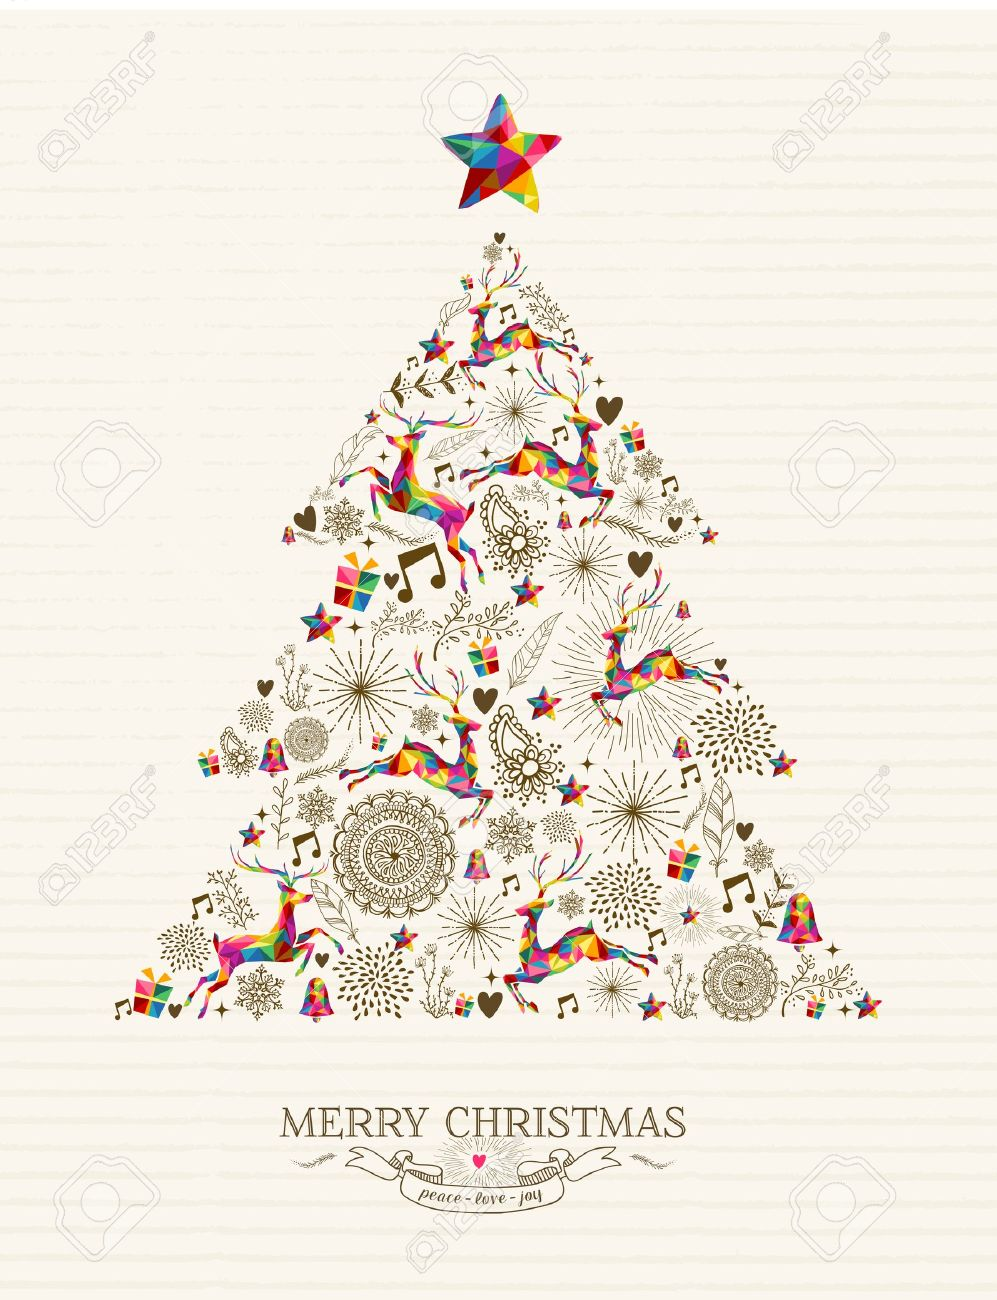 32614578 vintage christmas tree shape with colorful reindeer and retro label greeting card